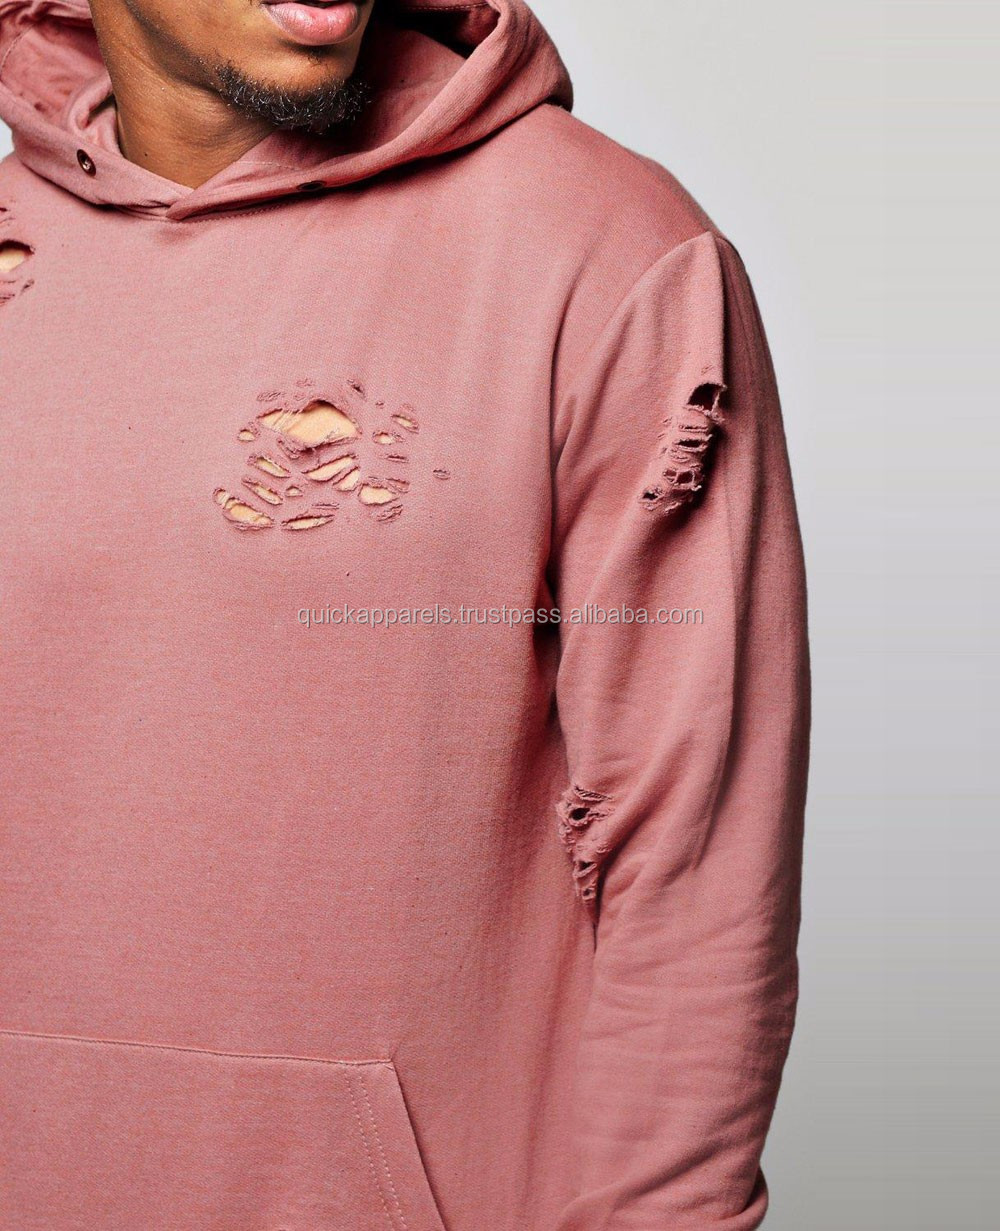 Design your own hoodie to sell in your store